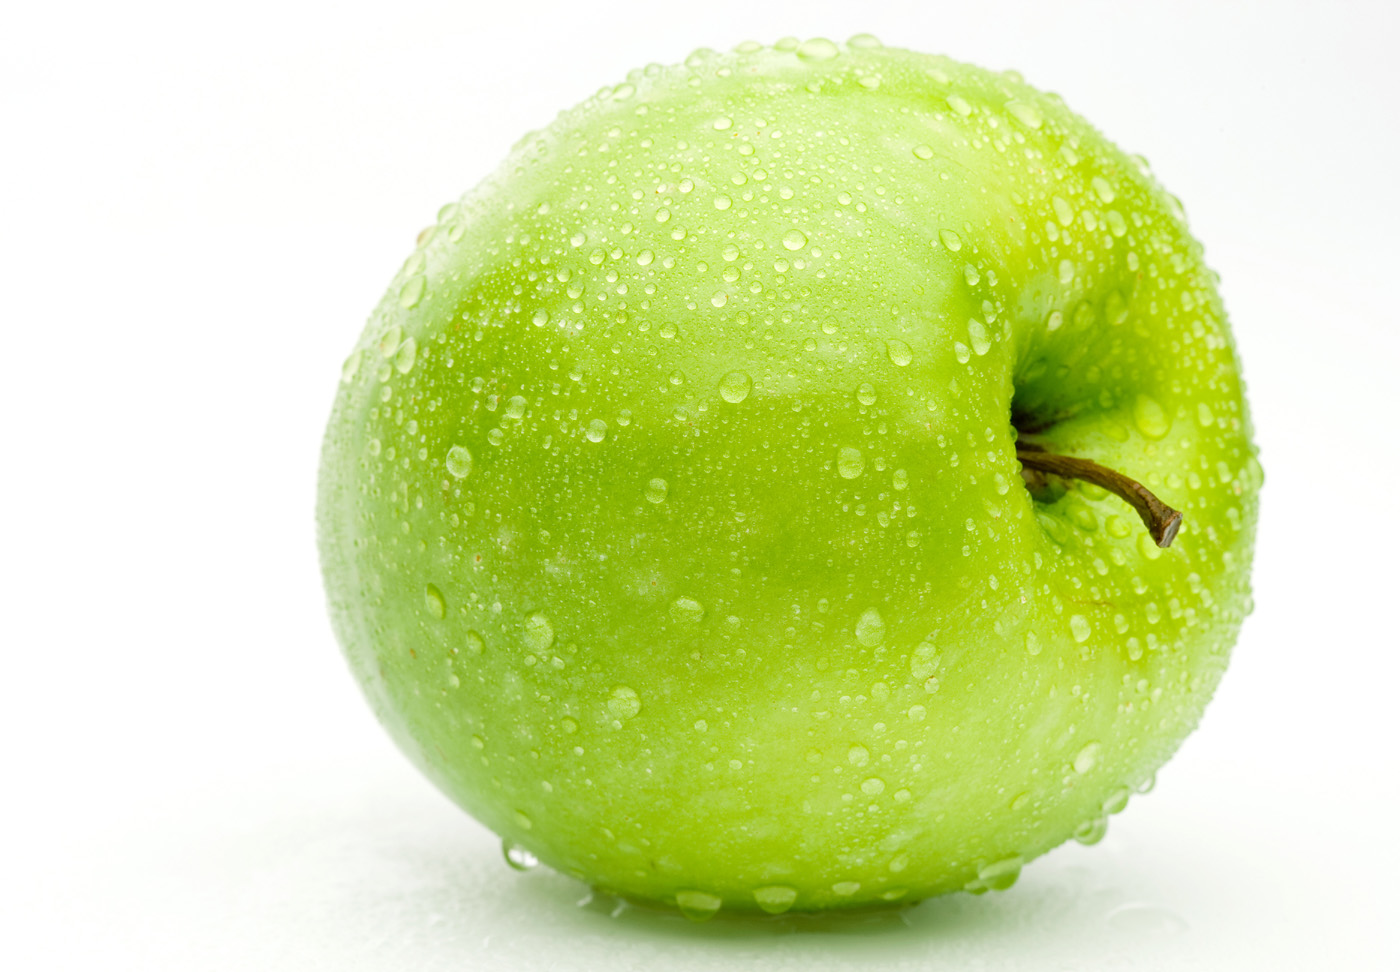 Green Apple 27217